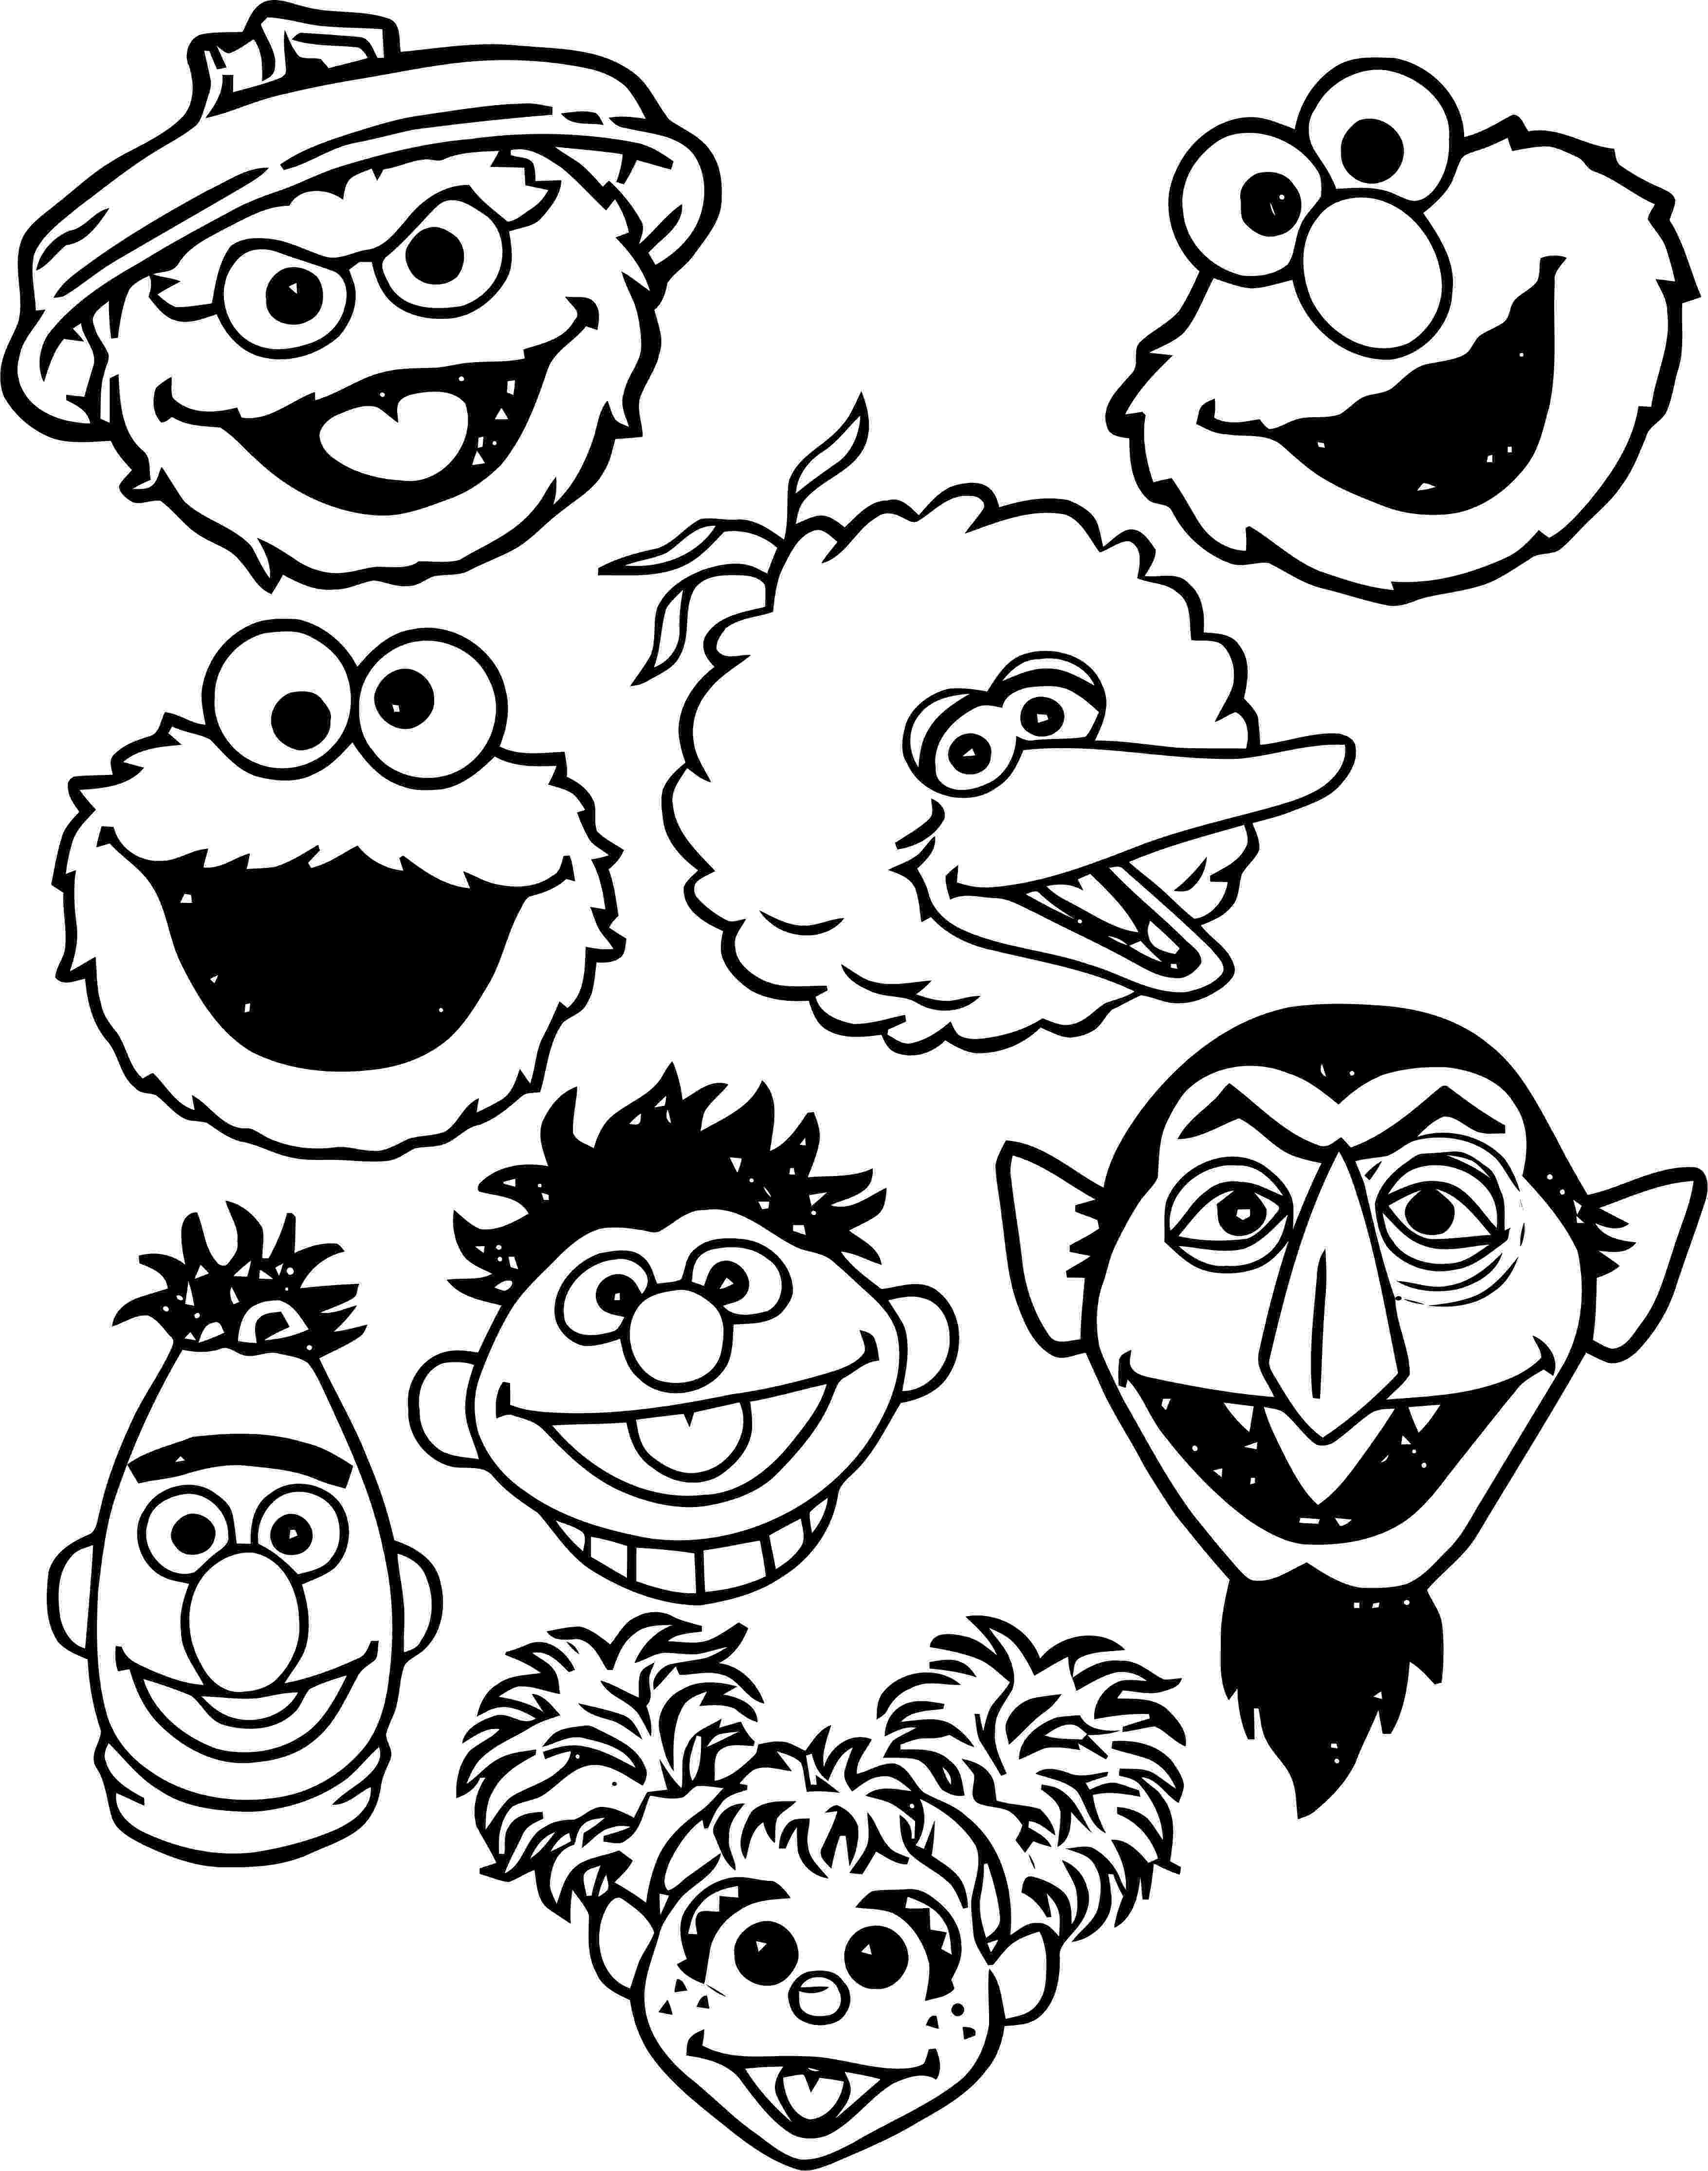 coloring pages of sesame street characters sesame street coloring pages getcoloringpagescom pages of characters coloring sesame street